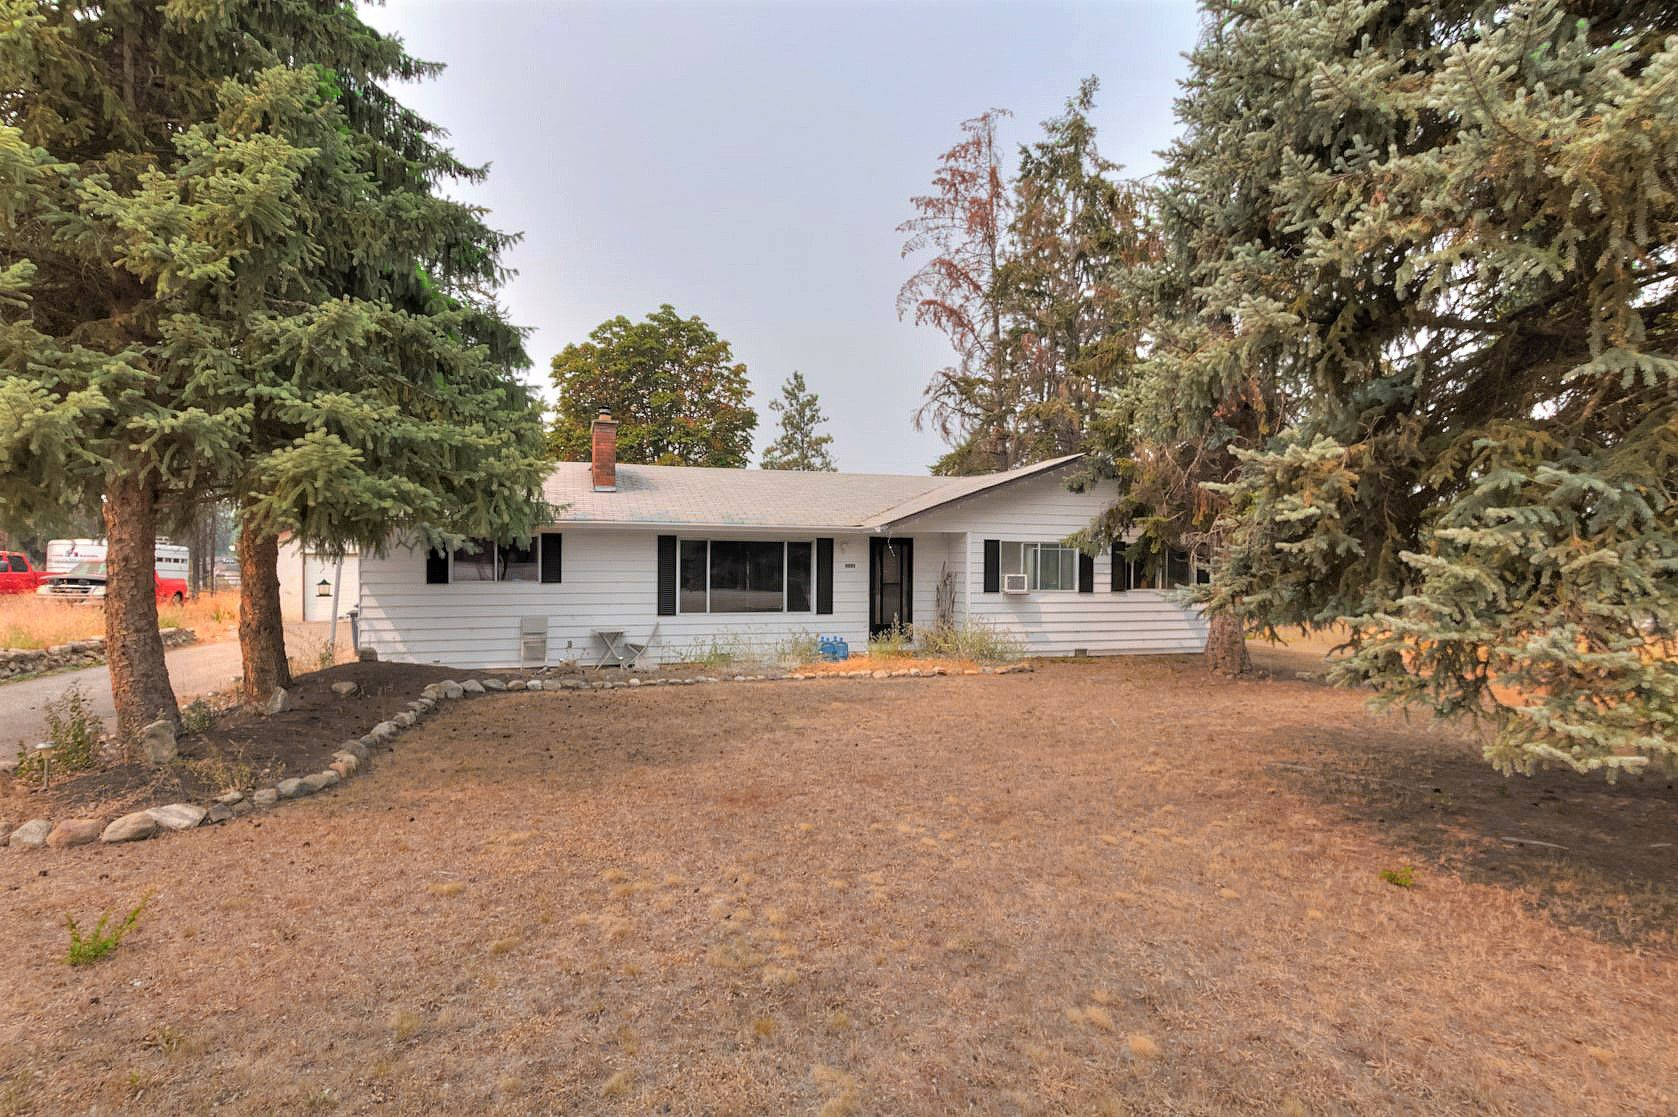 Main Photo: 4090 Field Road in Kelowna: South East Kelowna House for sale (Central Okanagan)  : MLS®# 10140100